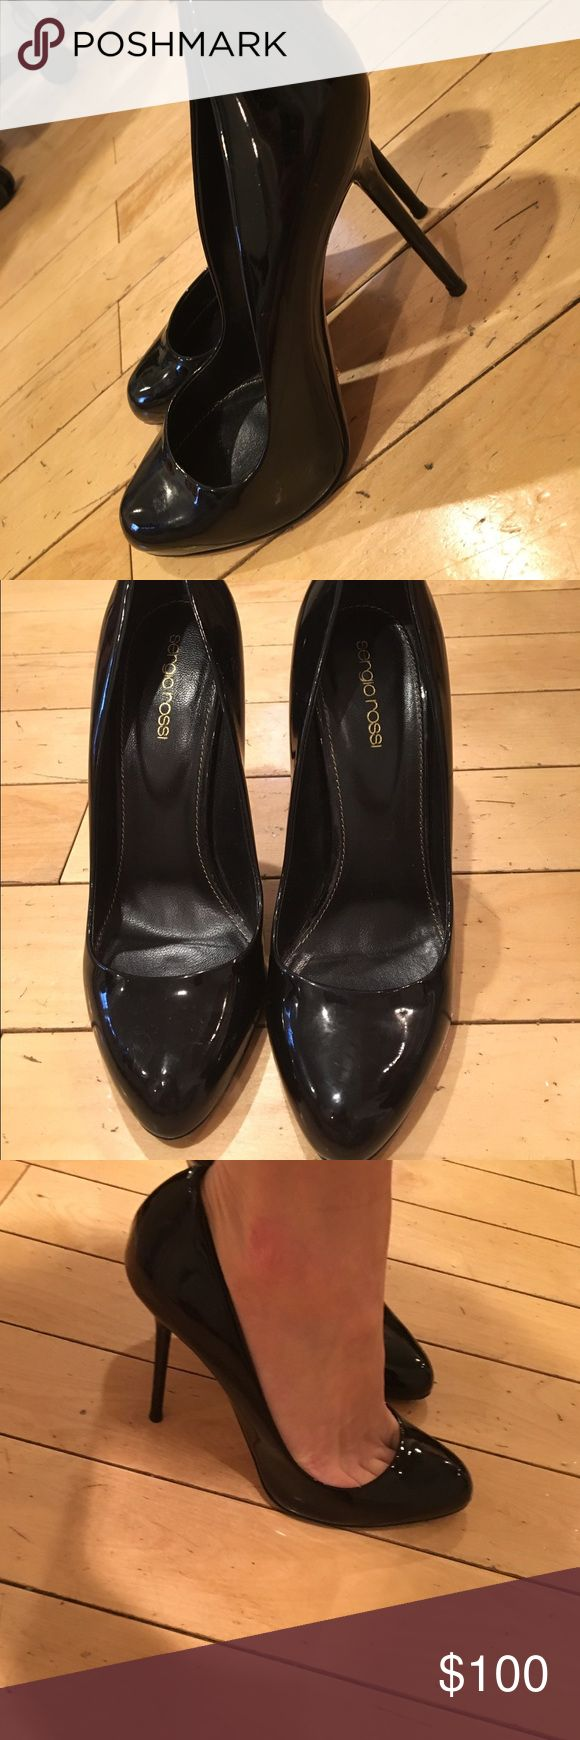 Sergio Rossi black patent leather pumps In good condition, classic black patent leather pump Sergio Rossi Shoes Heels